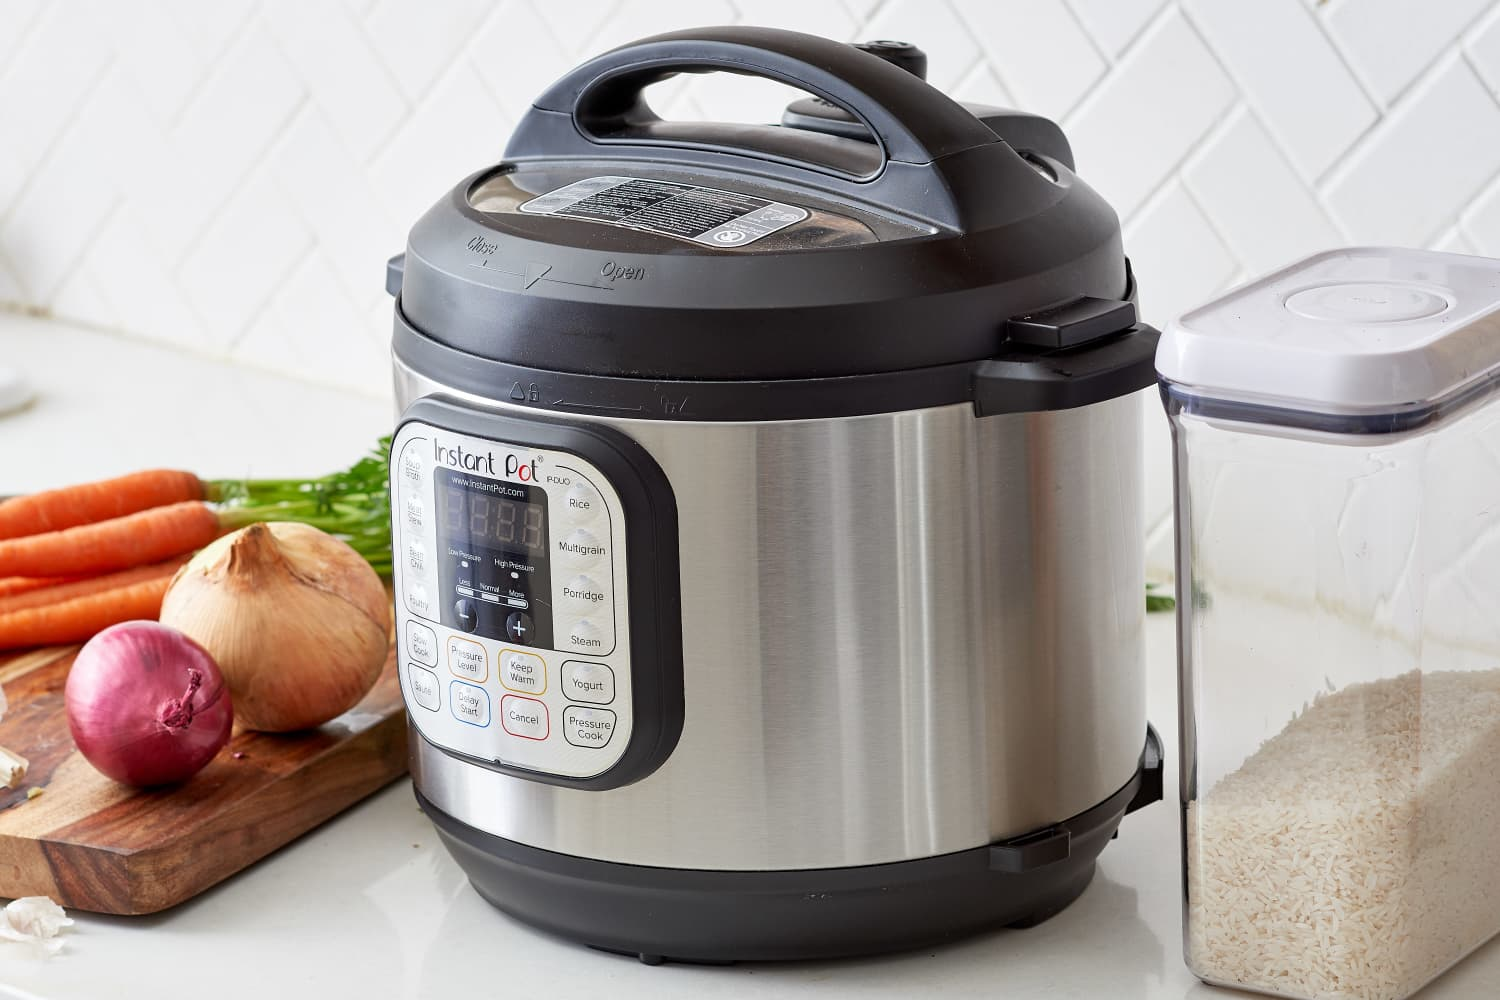 Into the Instant Pot - cover